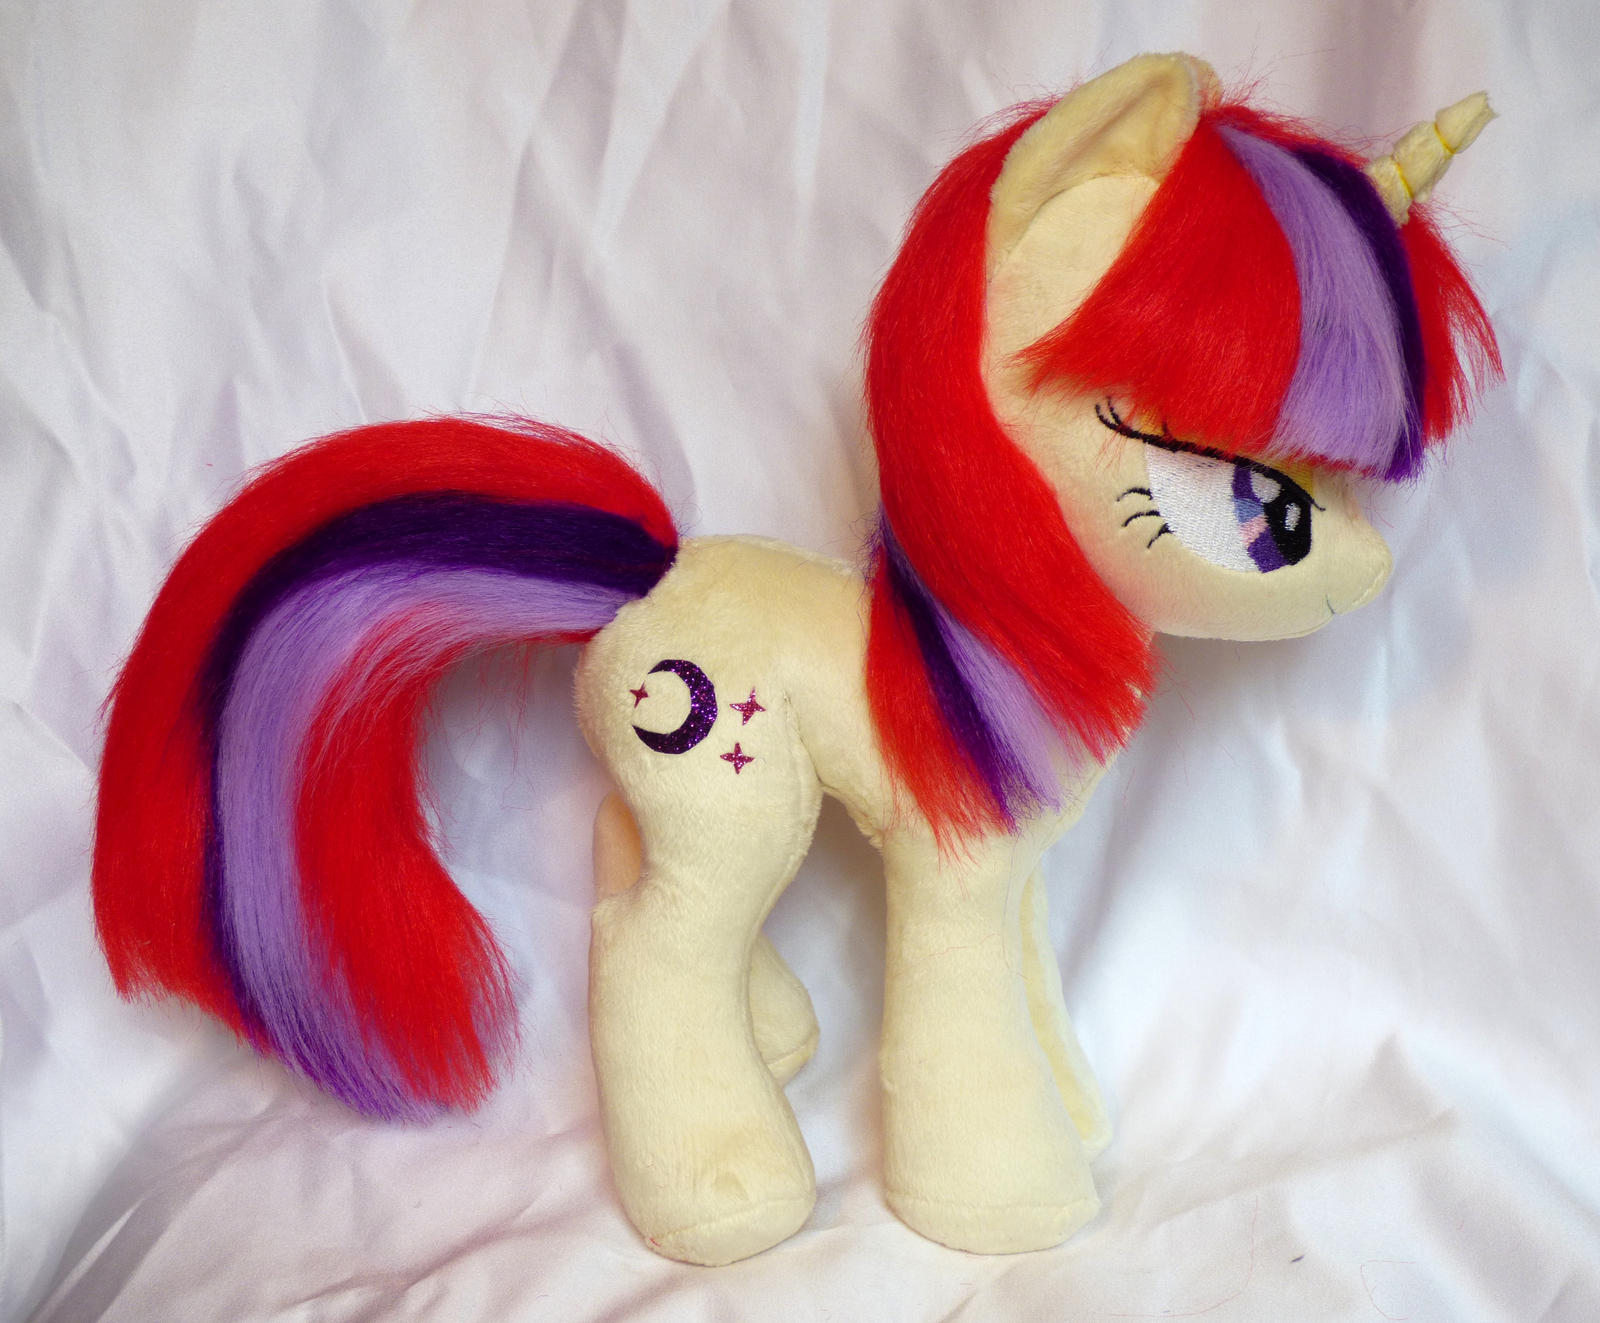 Add some moon to that dancer! Moondancer plushie